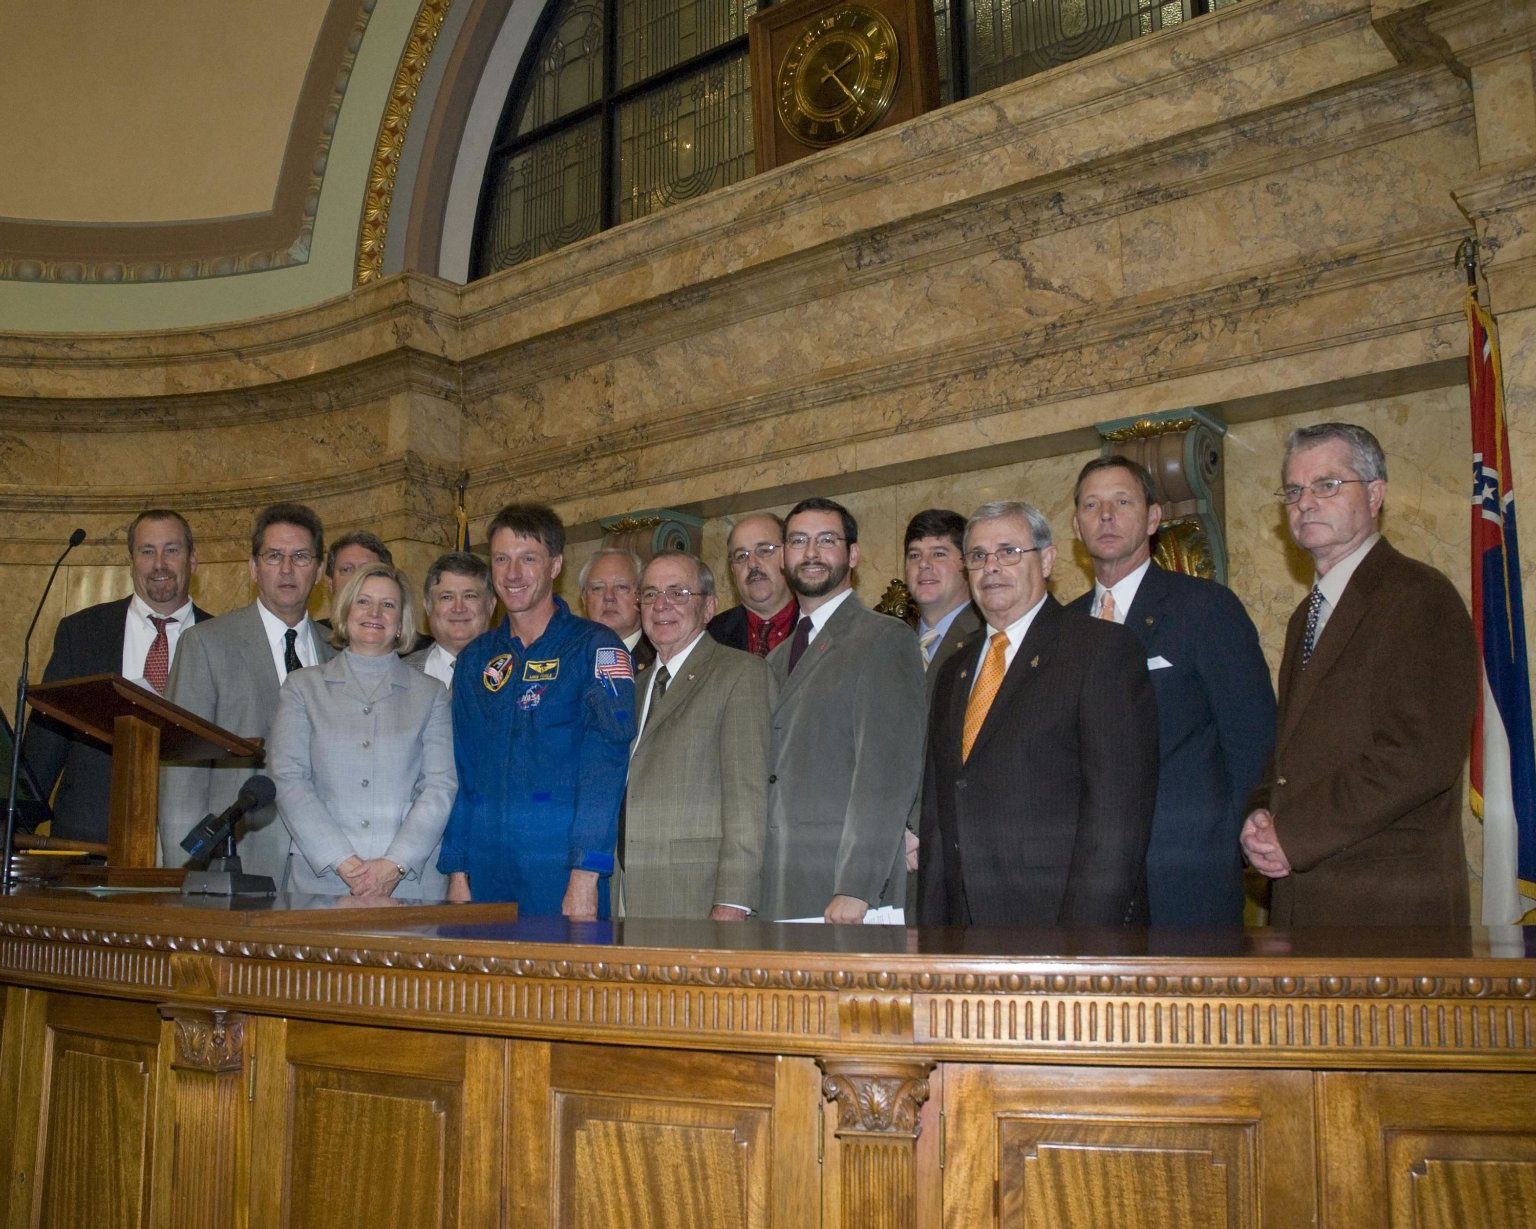 NASA Space Day in Mississippi - House of Representatives